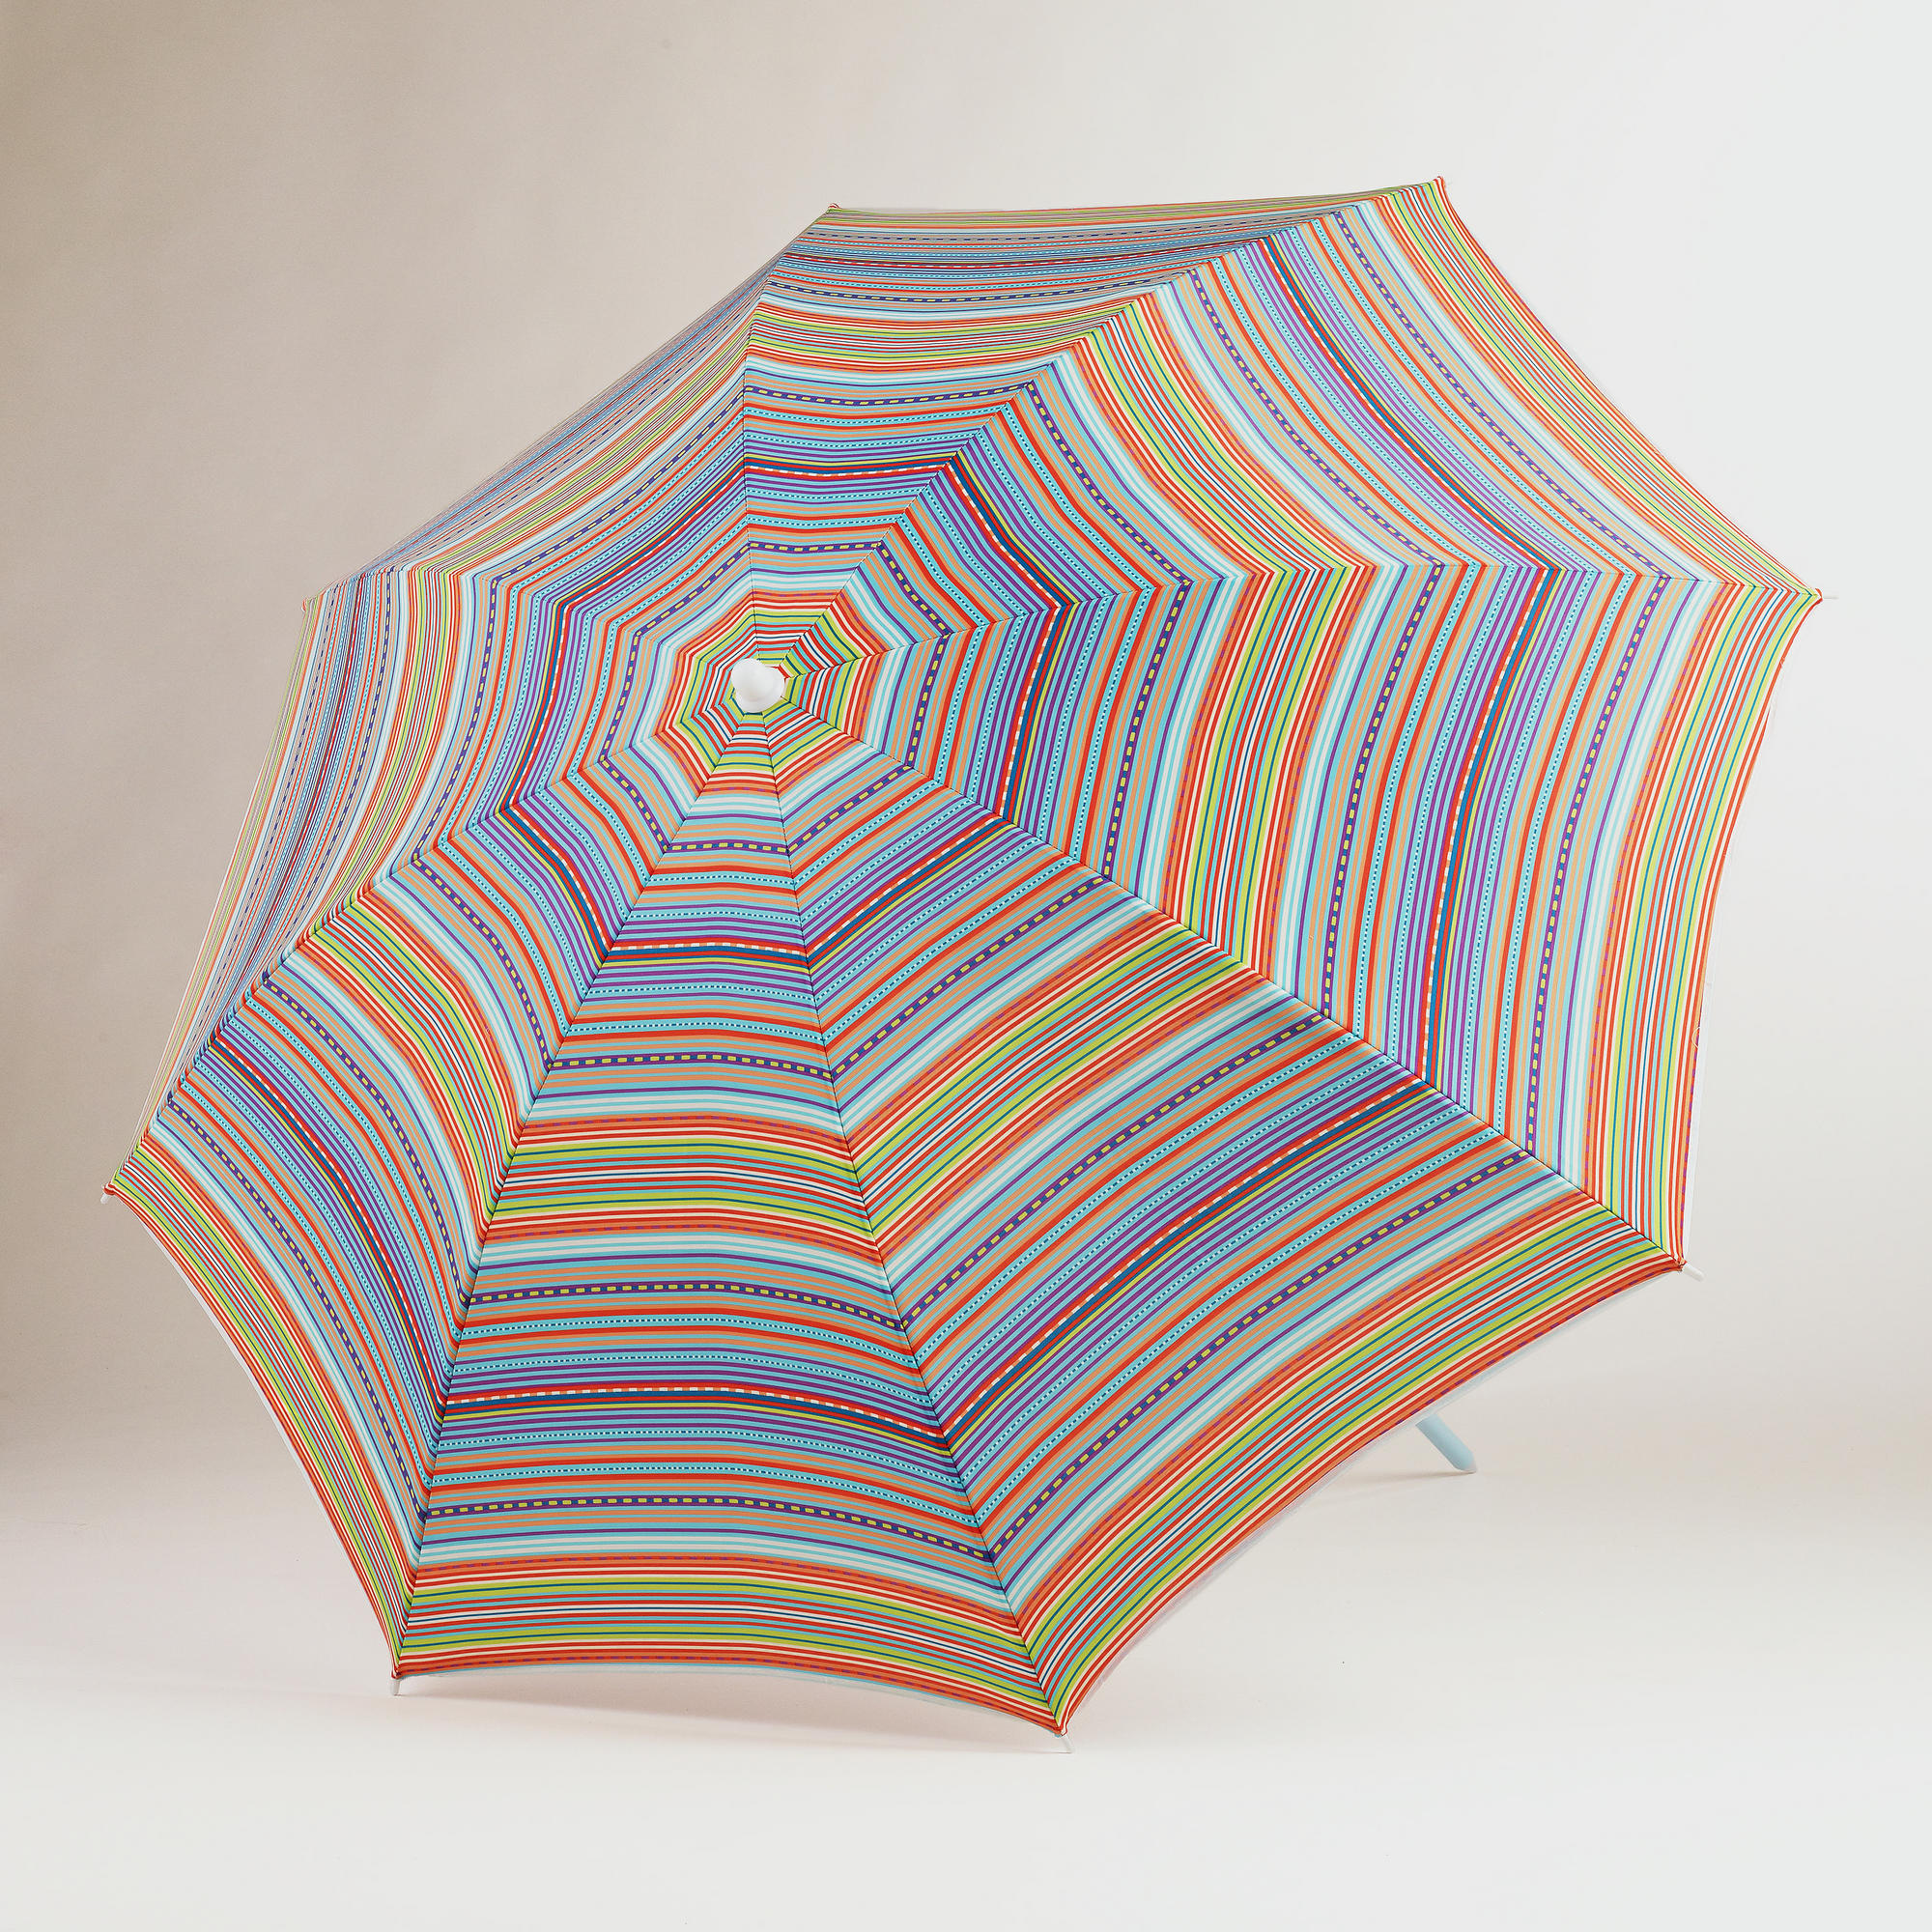 This multicolored, striped umbrella ($17) from Wor